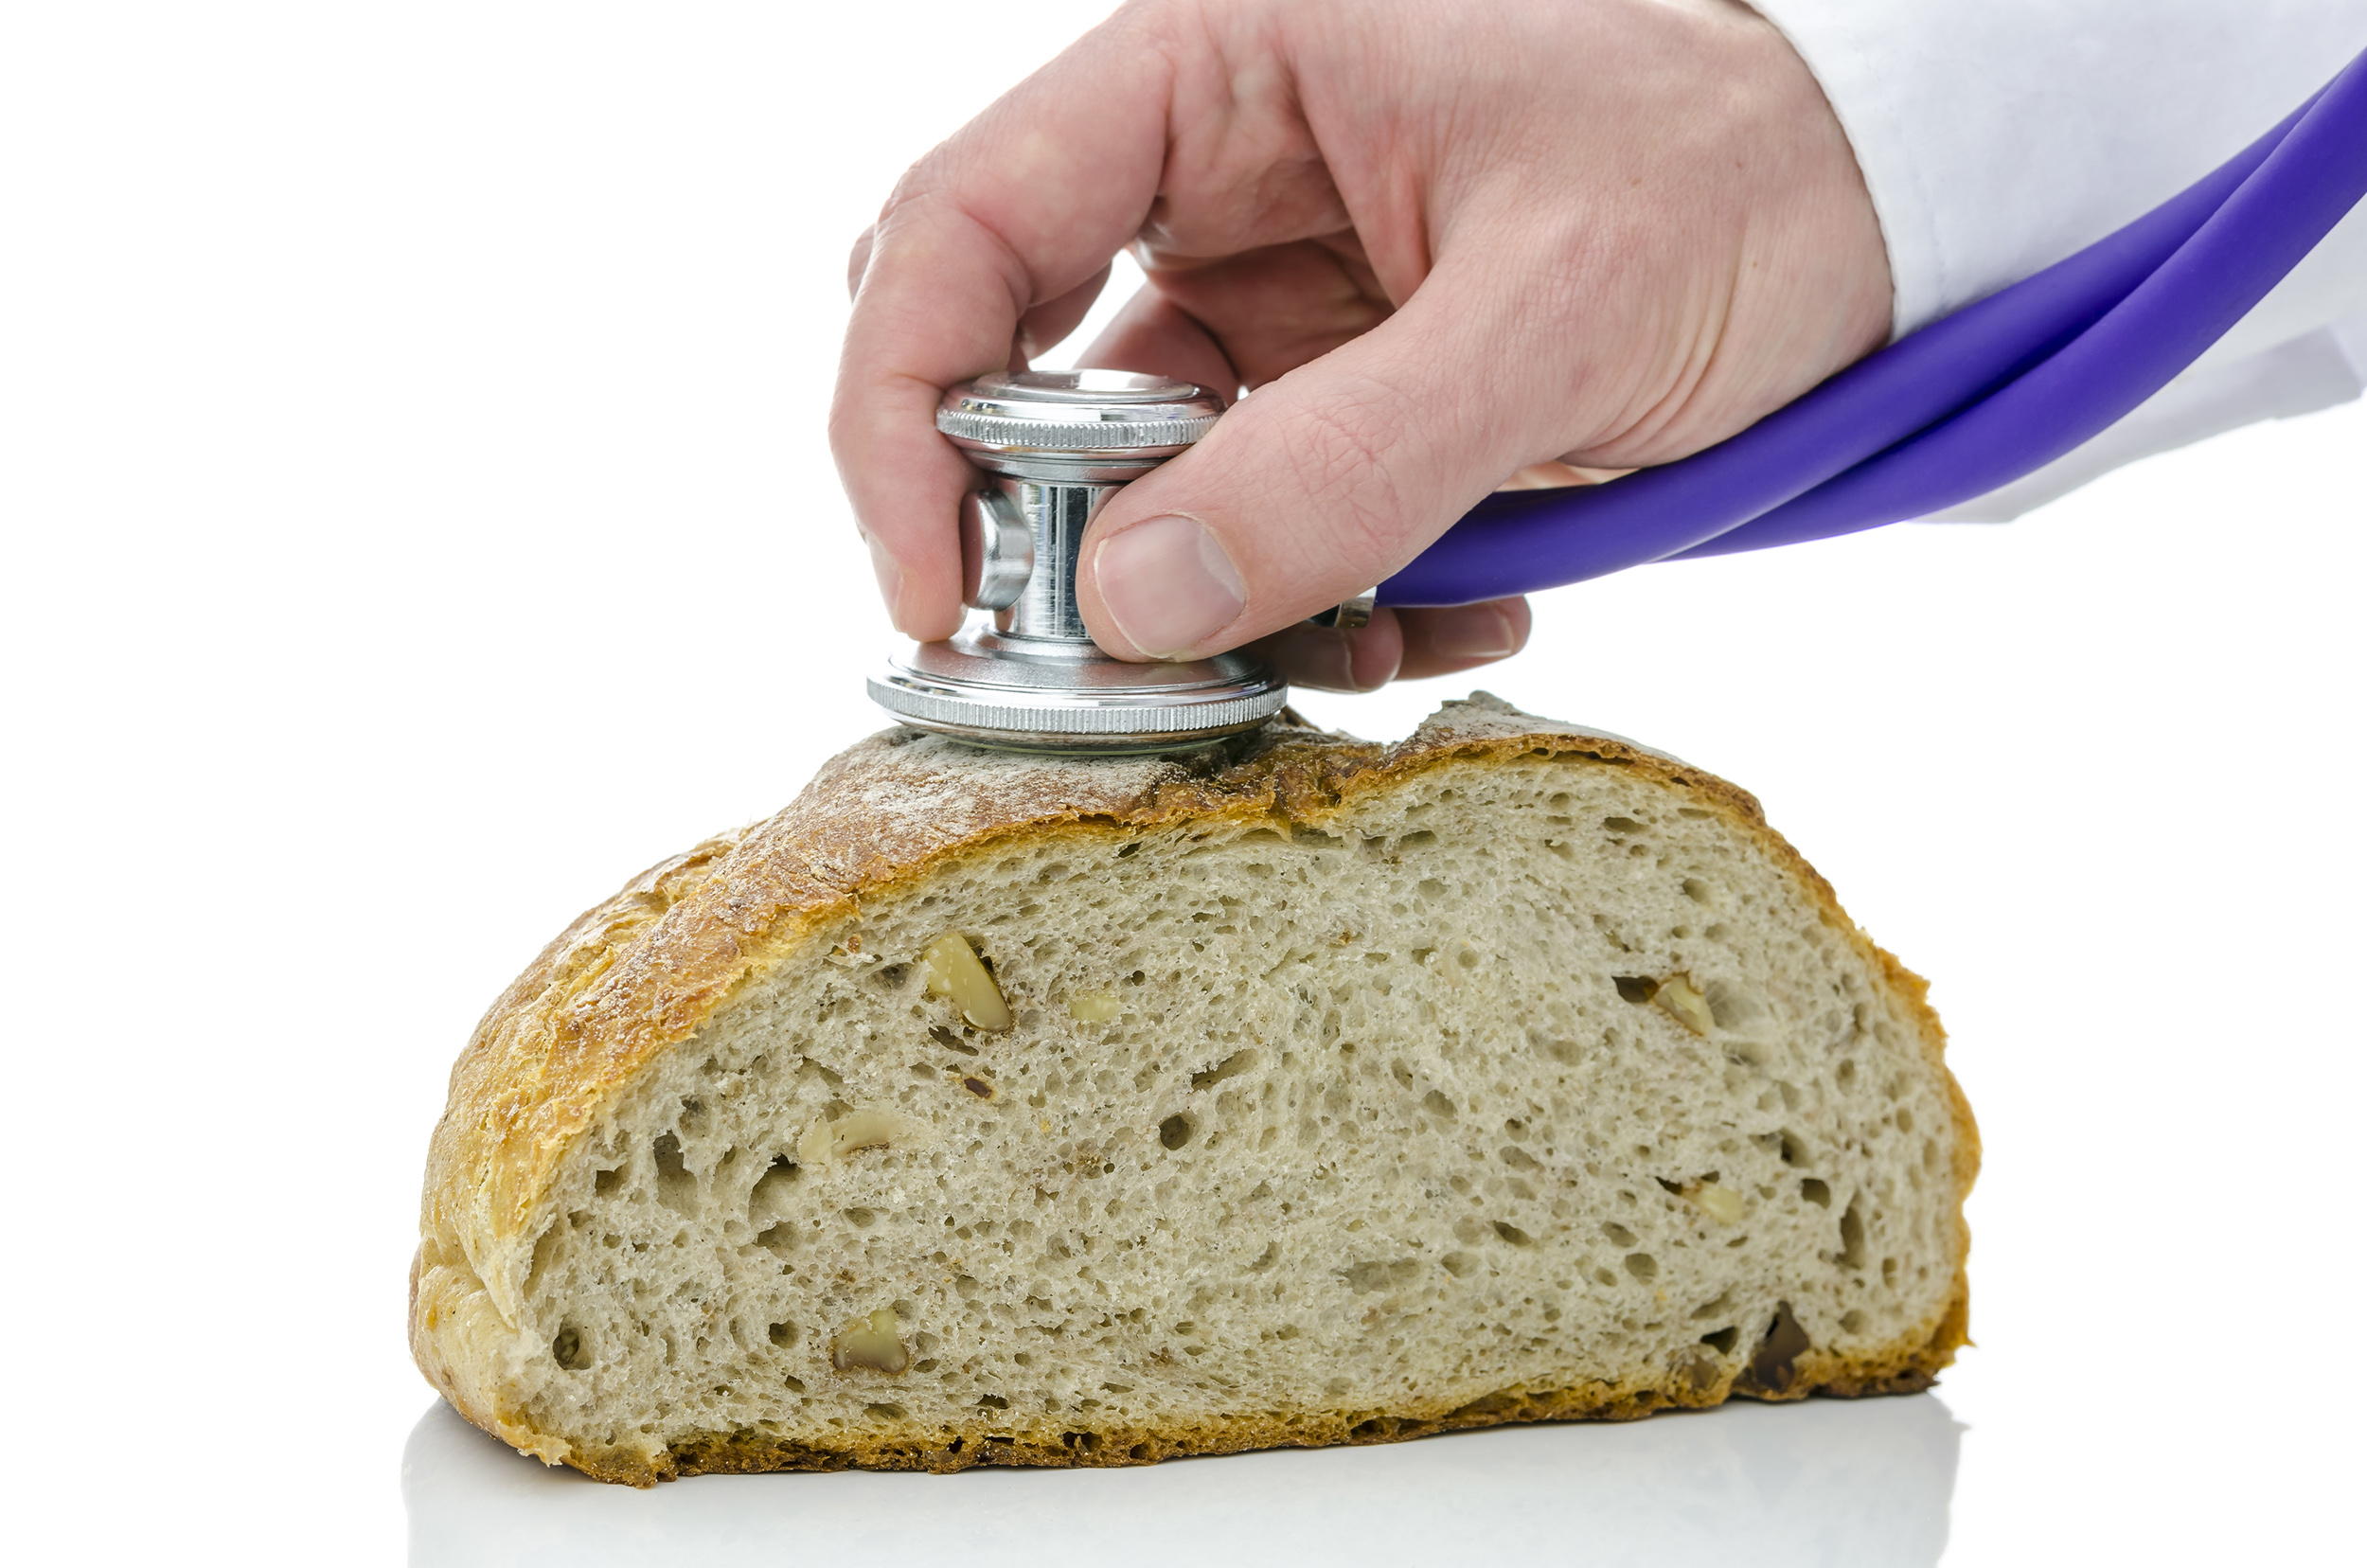 stethescope_bread.jpg